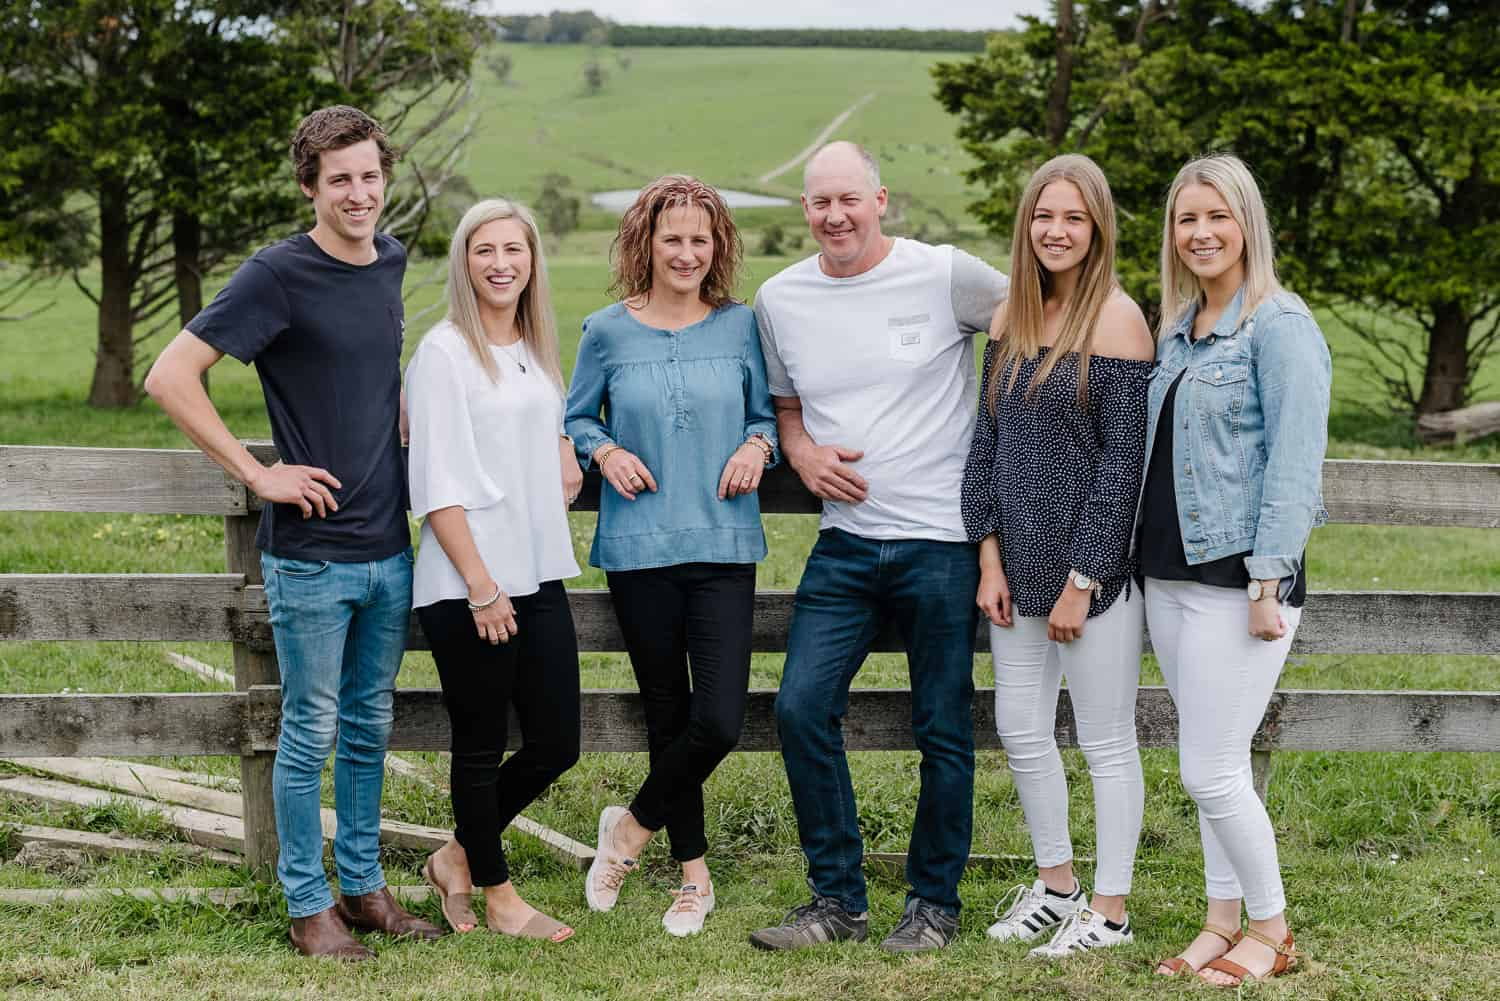 Dyunhoven family portrait near Timboon